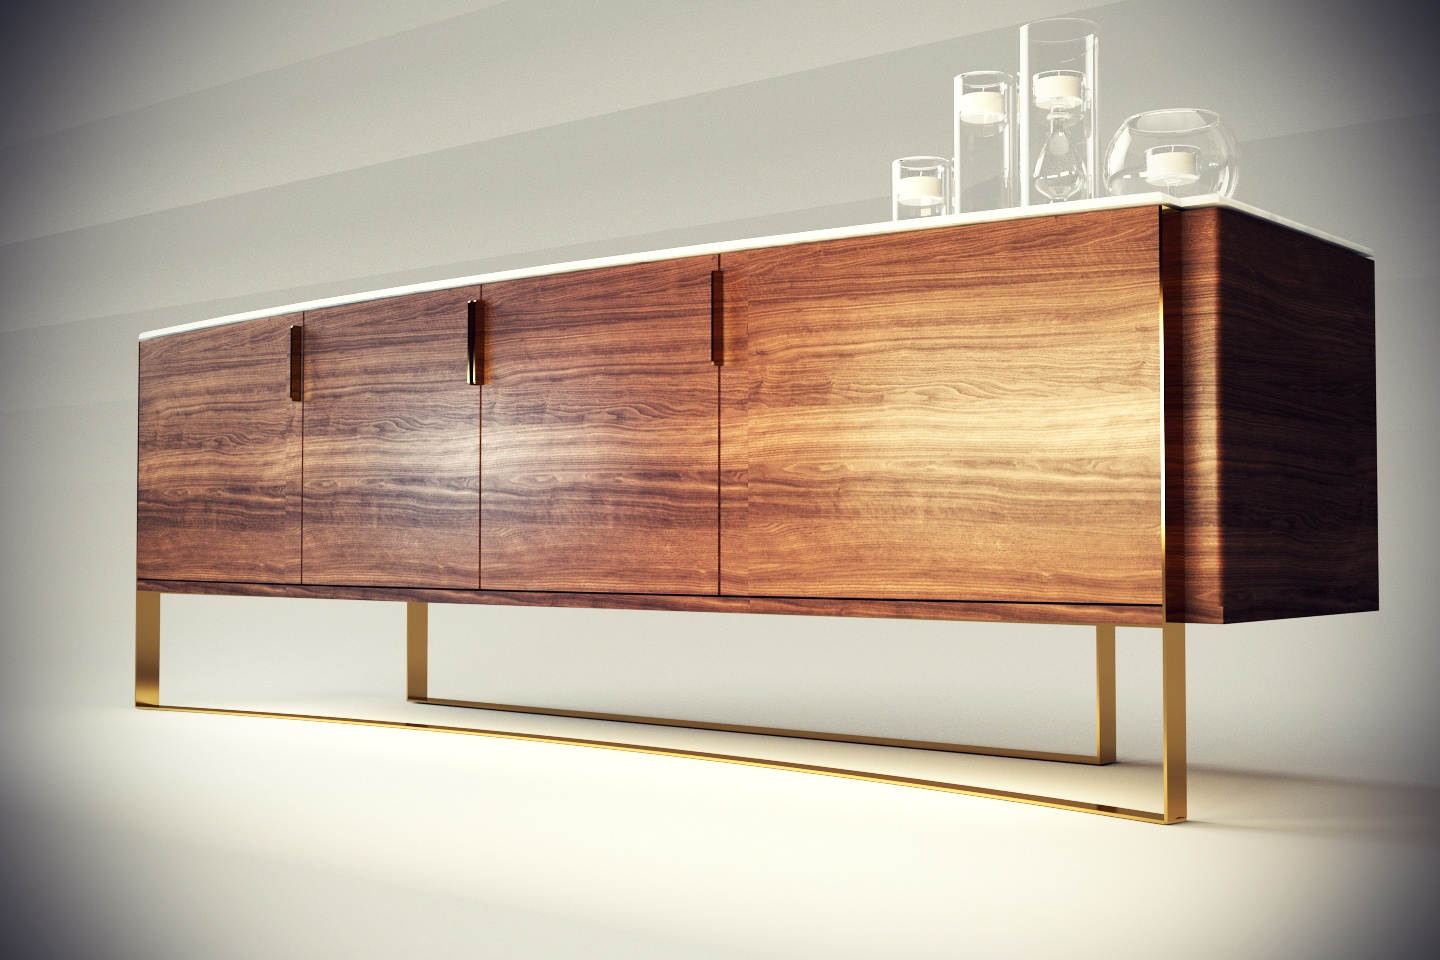 Sideboard Design For 'stella Mobilya' With The Within Stella Sideboards (View 16 of 30)